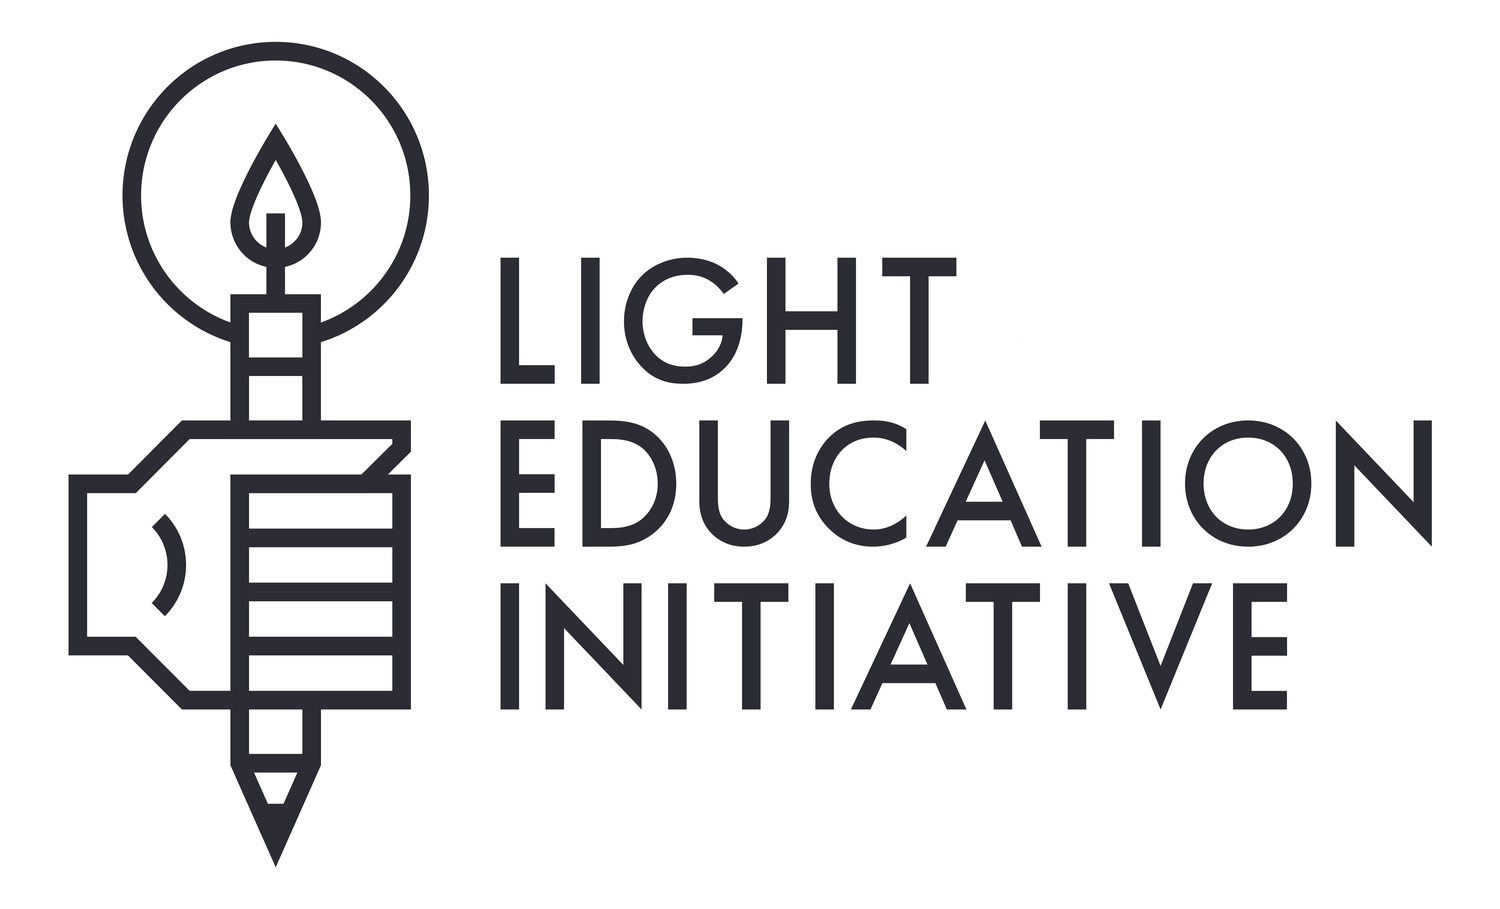 LIGHT EDUCATION INITIATIVE